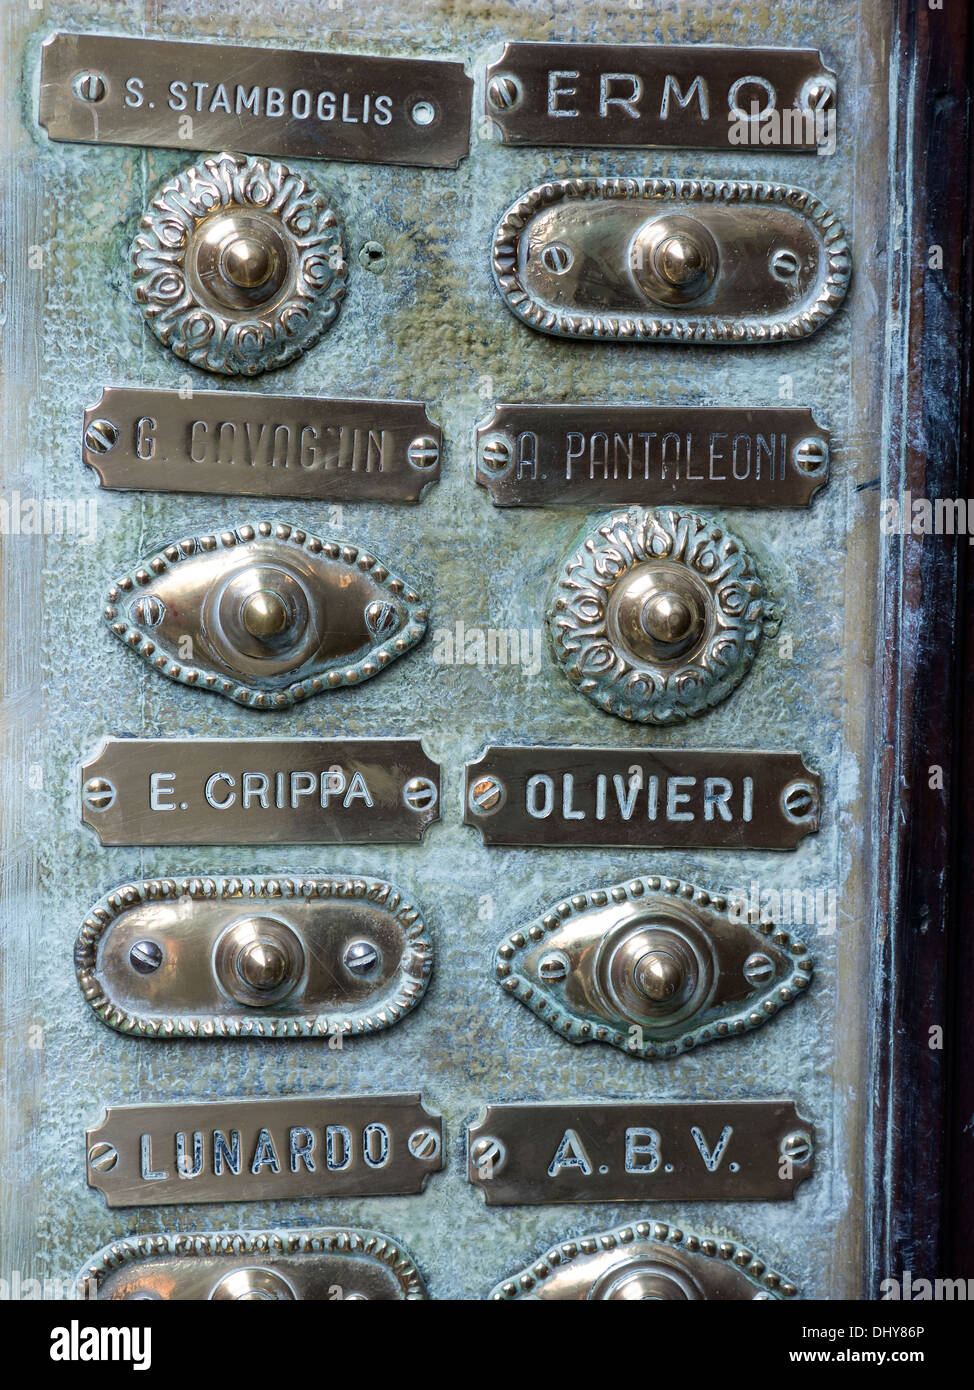 Old ornate decorative brass bell pushes and Italian nameplates, Venice, Italy. - Stock Image